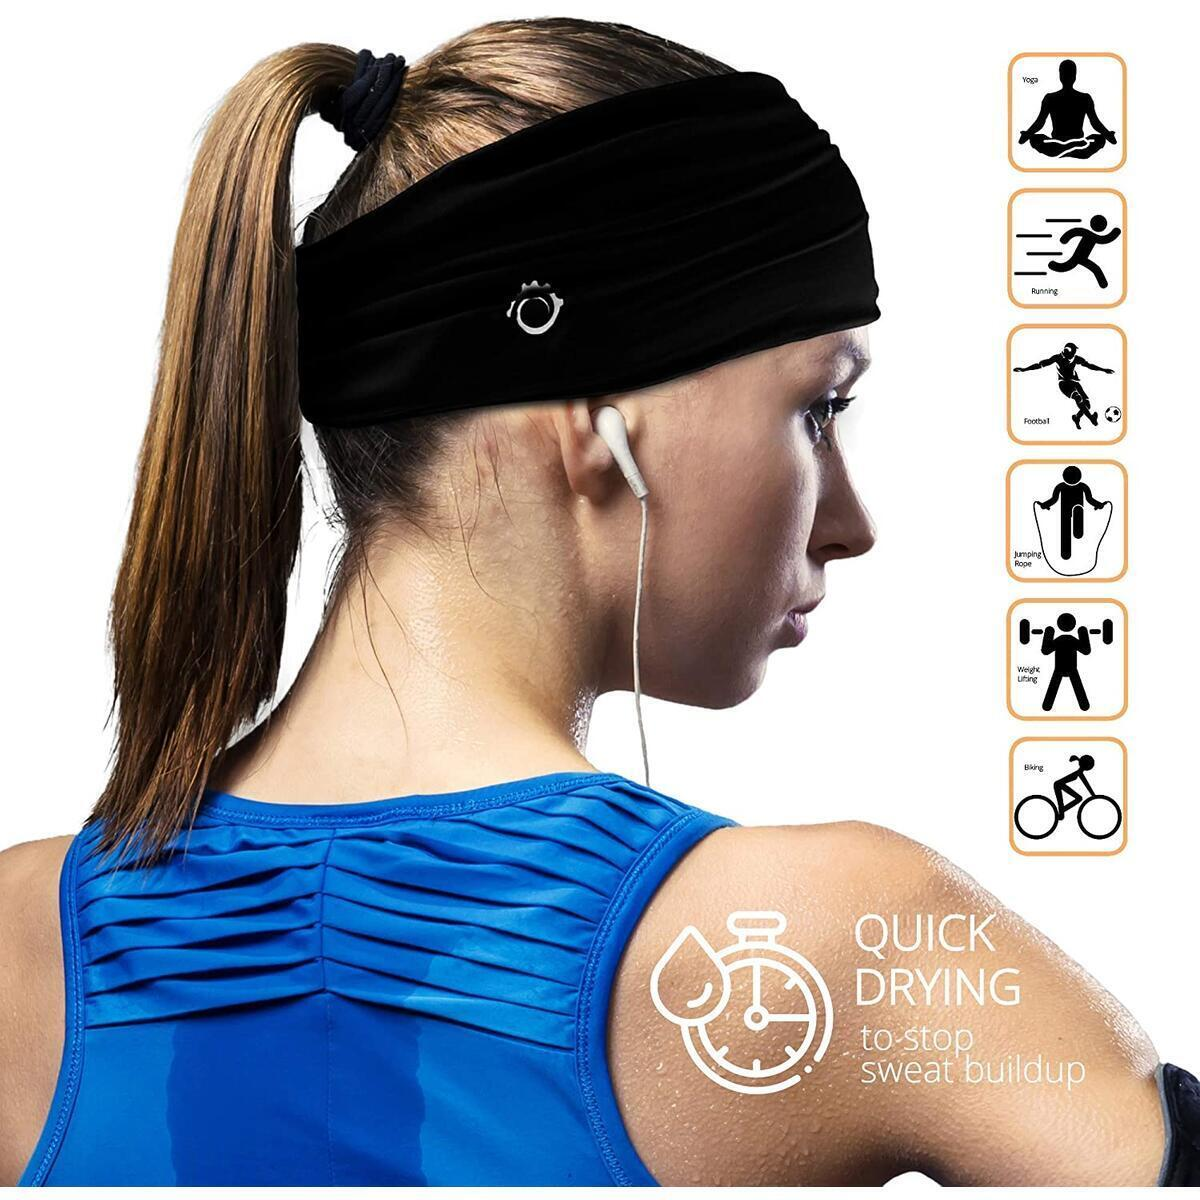 Multi-Functional Headbands for Men & Women - USE IT AS: Sweatband, Face Mask, Headband for Yoga, Workout, Crossfit, Running...